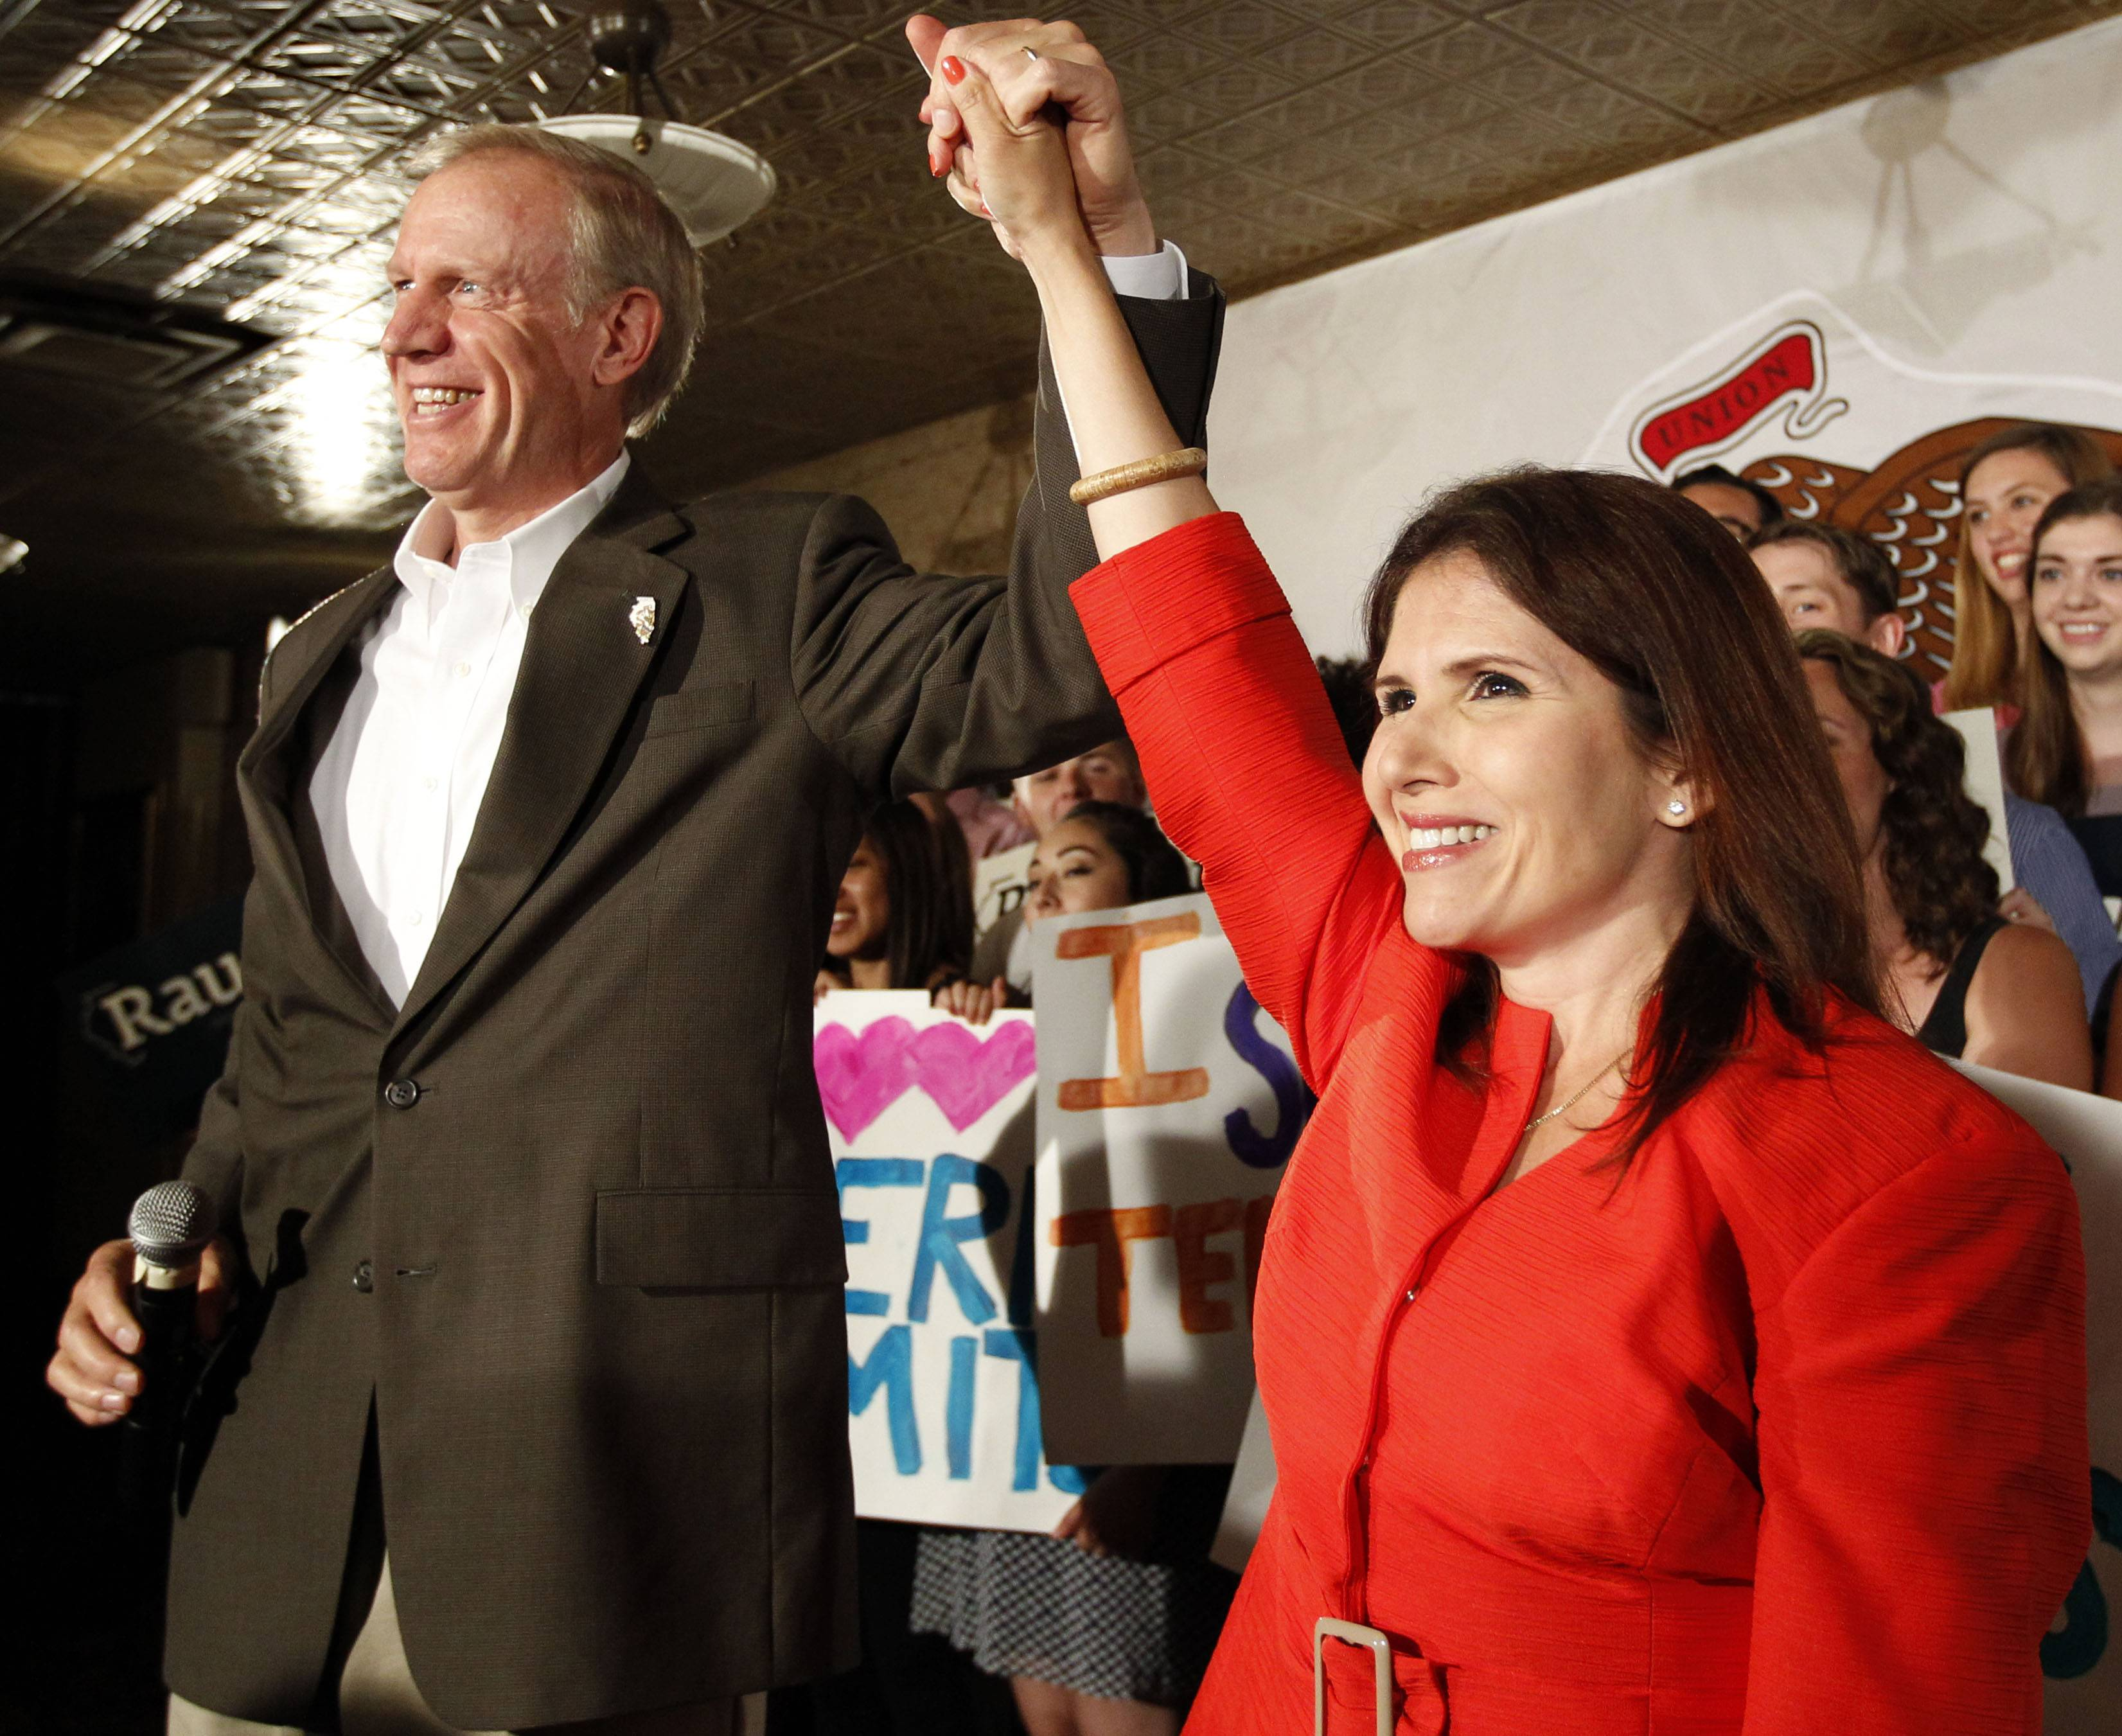 Republican candidate for governor Bruce Rauner stands with his running mate, Evelyn Sanguinetti of Wheaton, during a news conference Monday in Chicago. Rauner says he's continuing his efforts to impose term limits on Illinois legislators.